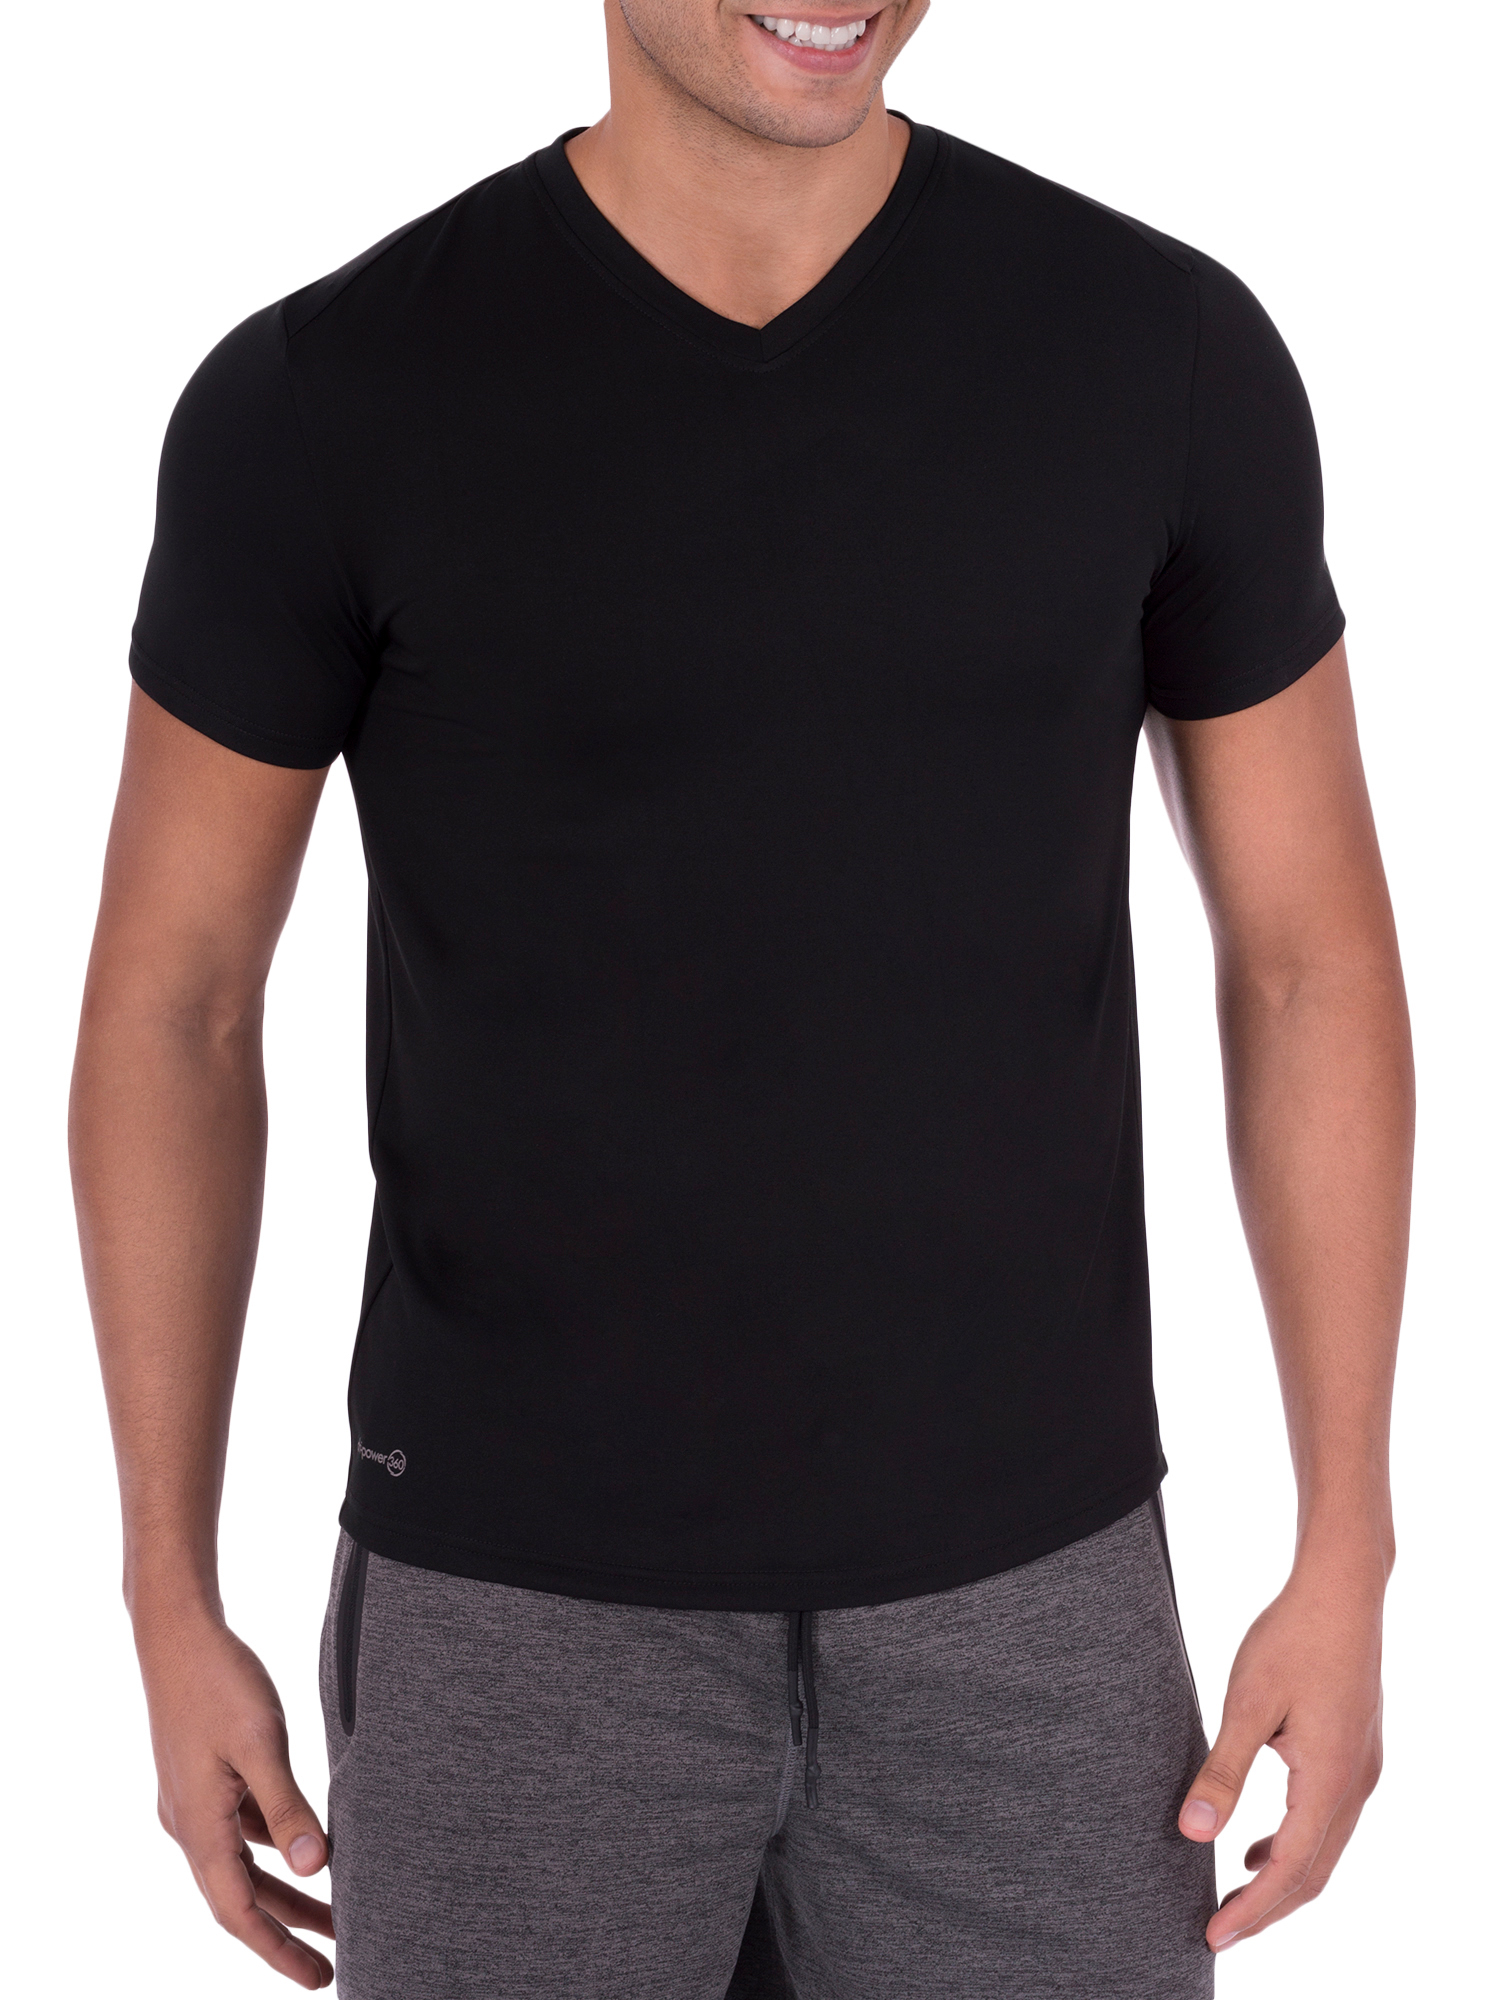 Big Men's Performance Activewear Short Sleeve V-Neck Tee